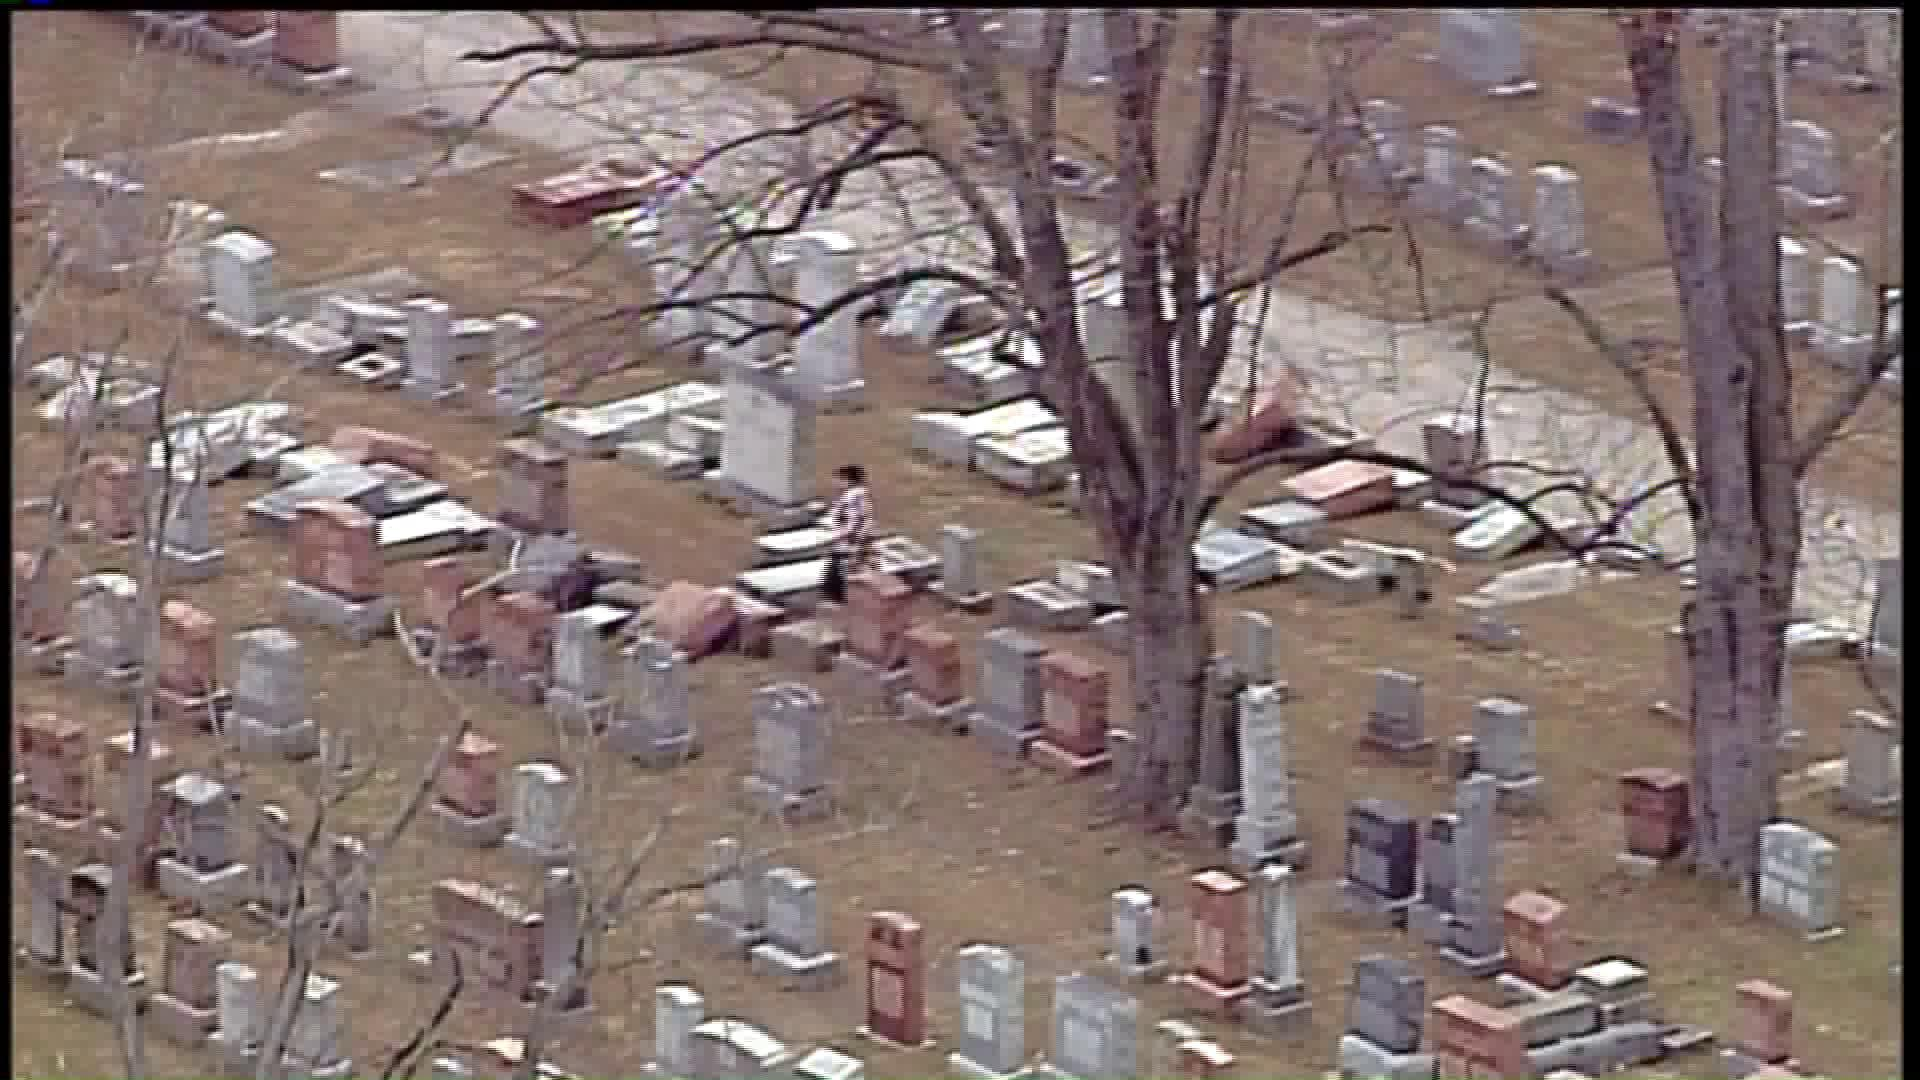 Vandals Damage Dozens of Headstones at Historic Jewish Cemetery